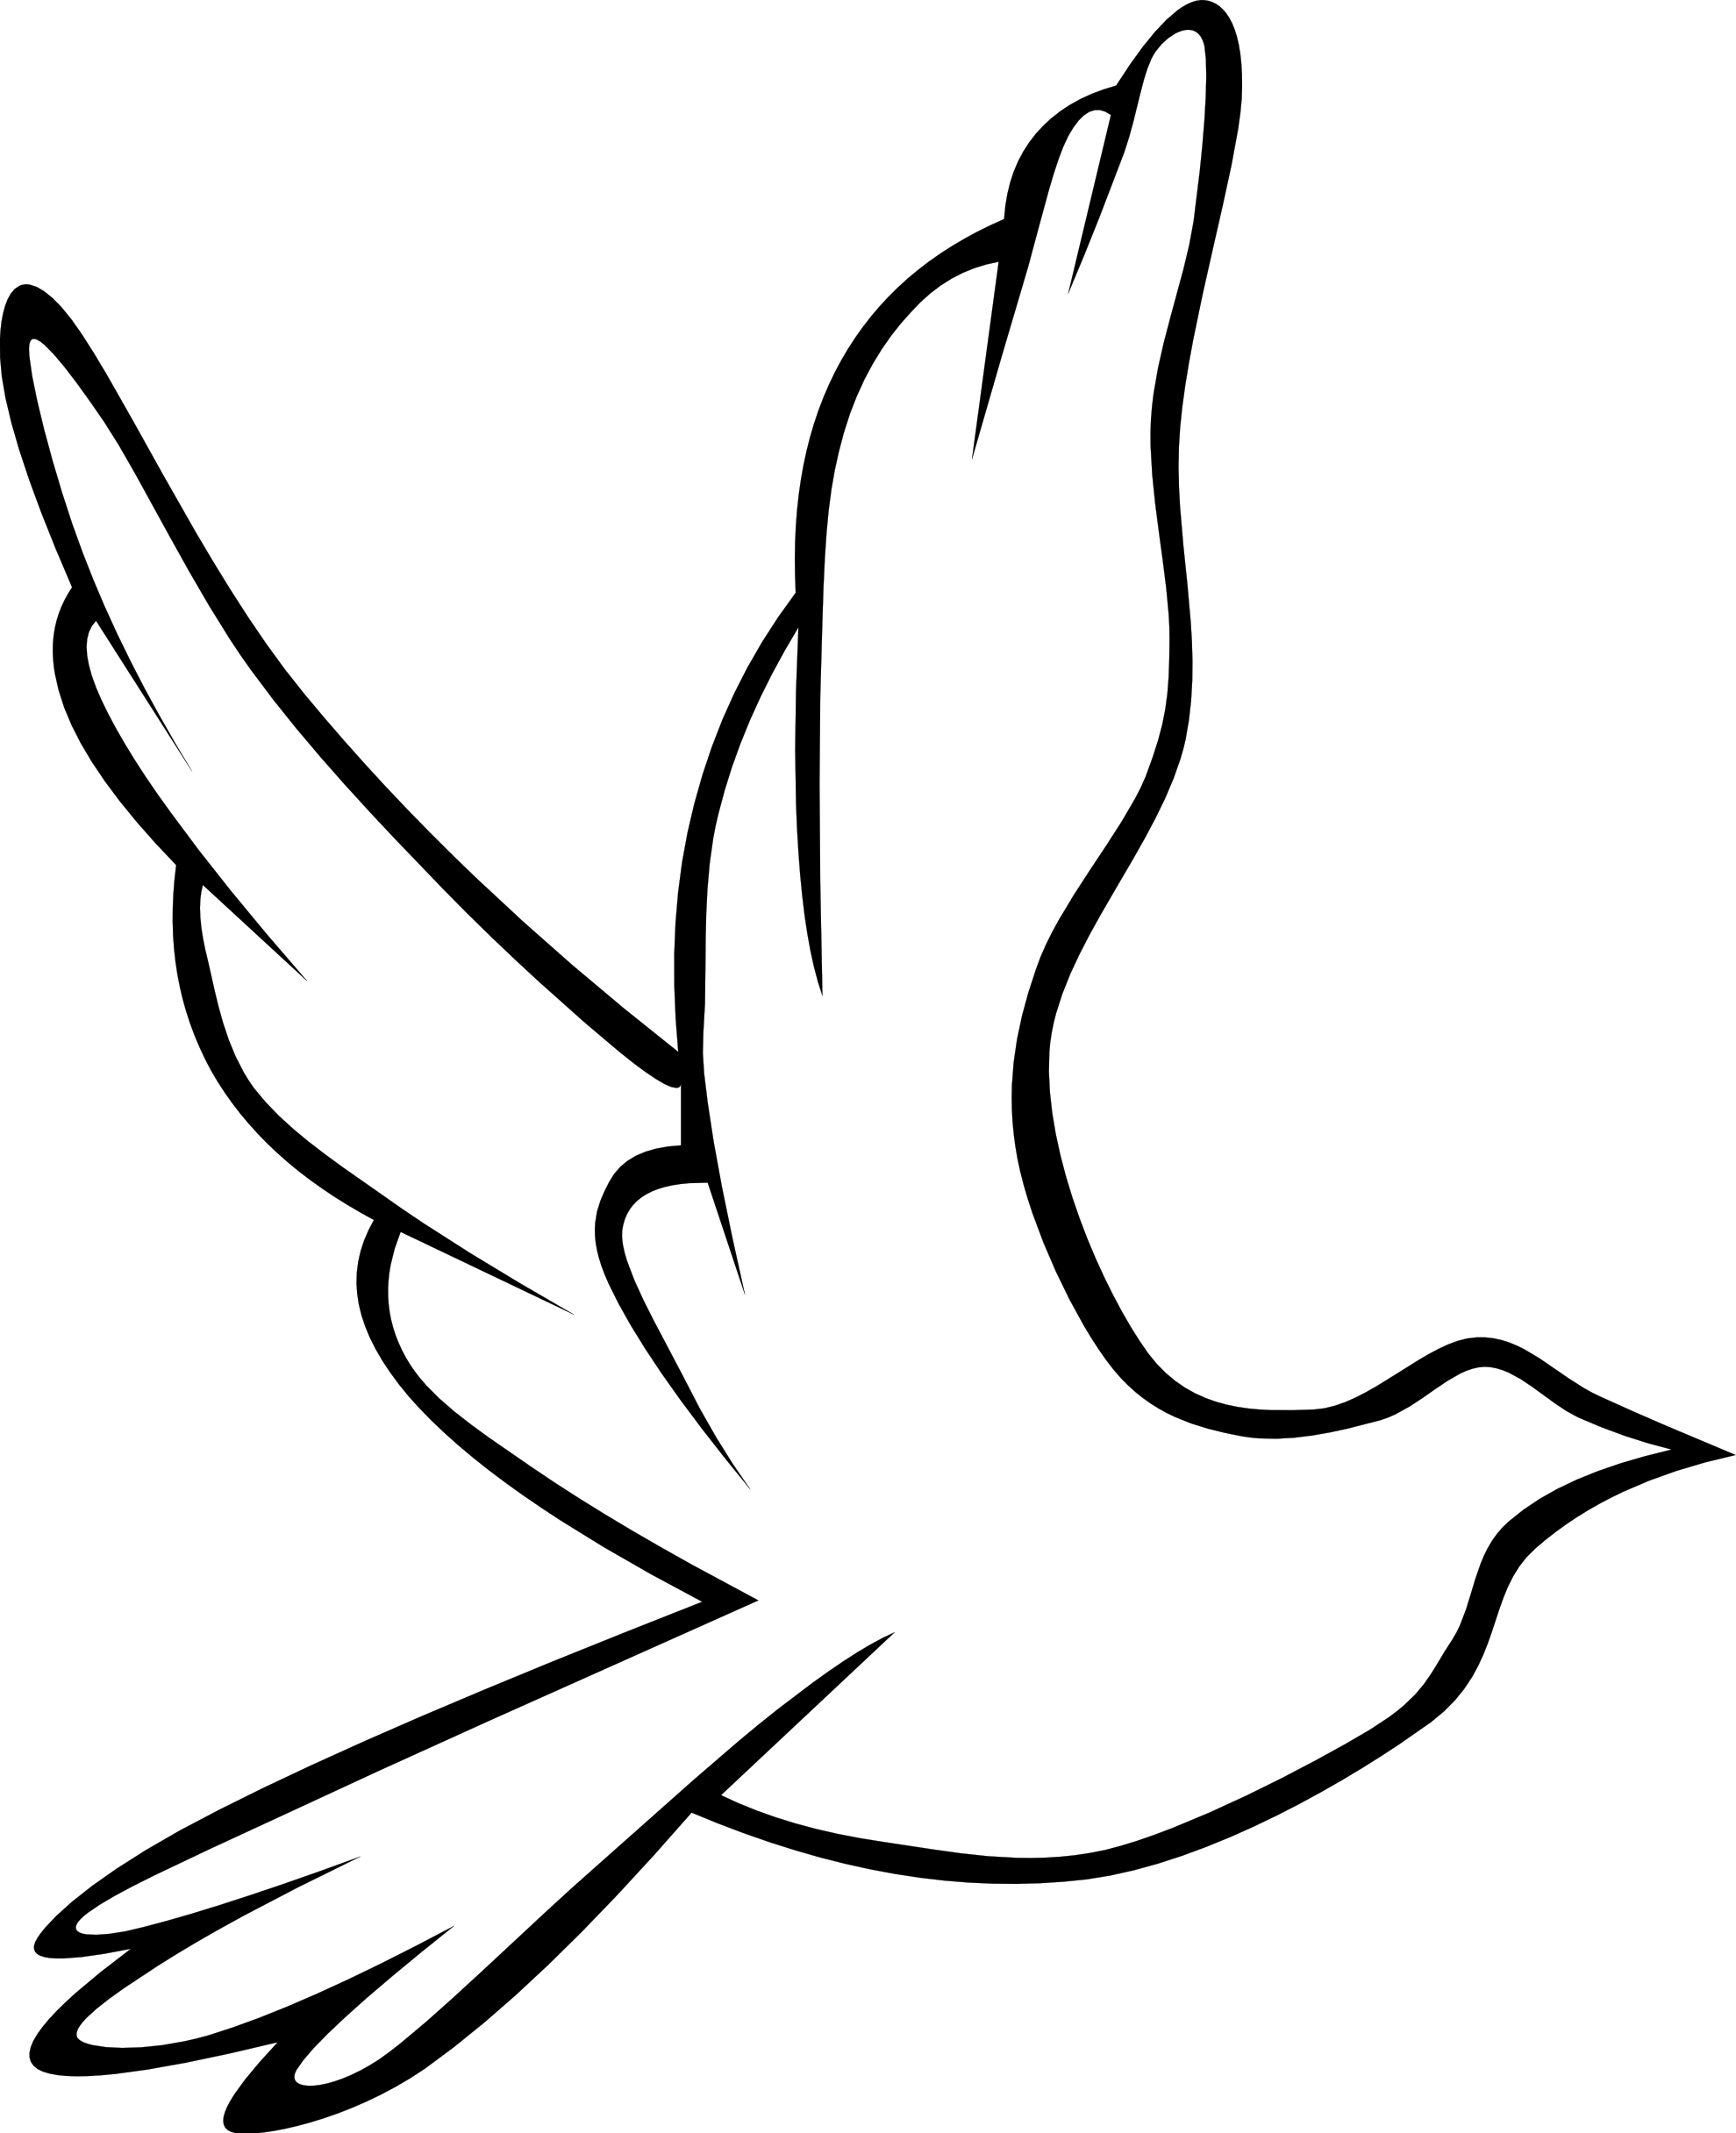 Fireman clipart black and white. Clip art peace dove